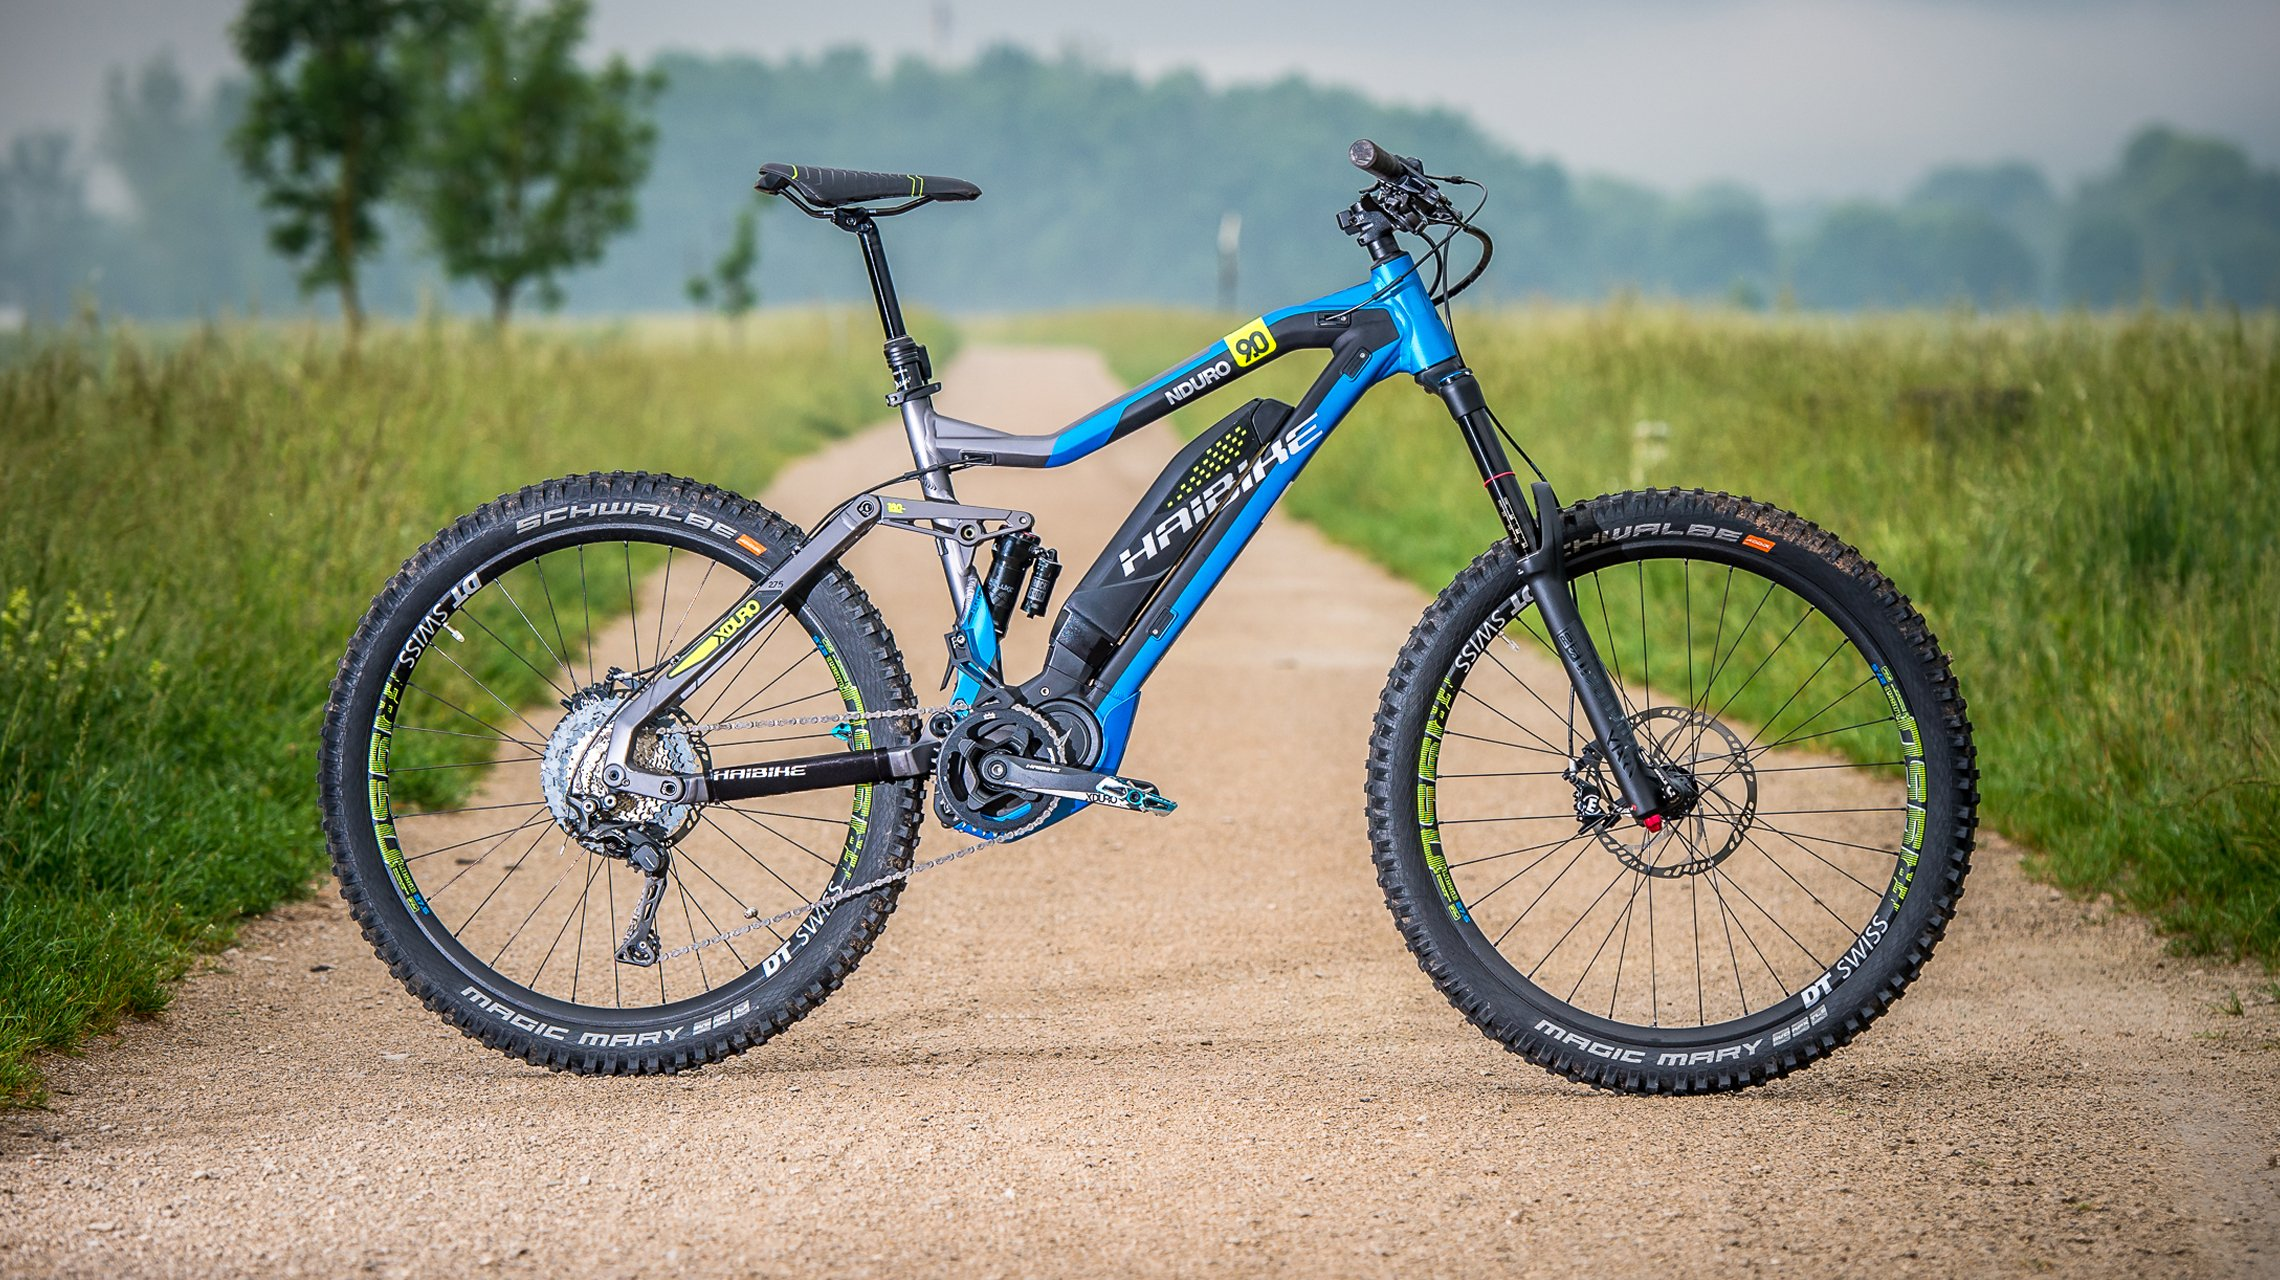 Haibike XDURO Nduro 9 0 review: Long travel eMTB with a powerful